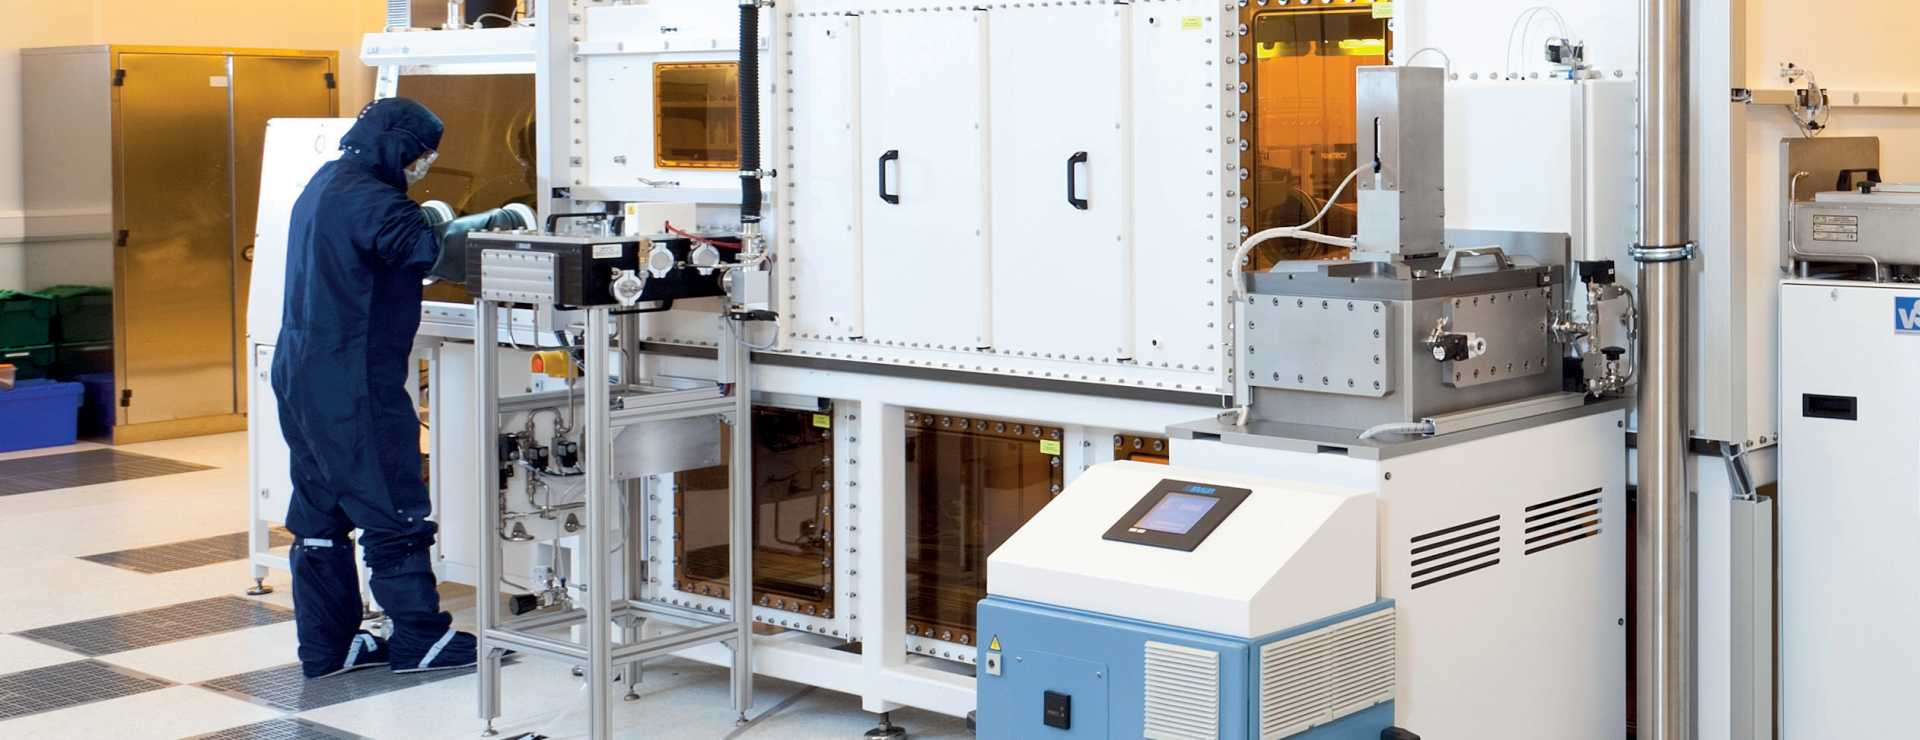 Cleanroom at CPI's National Printable Electronics Centre